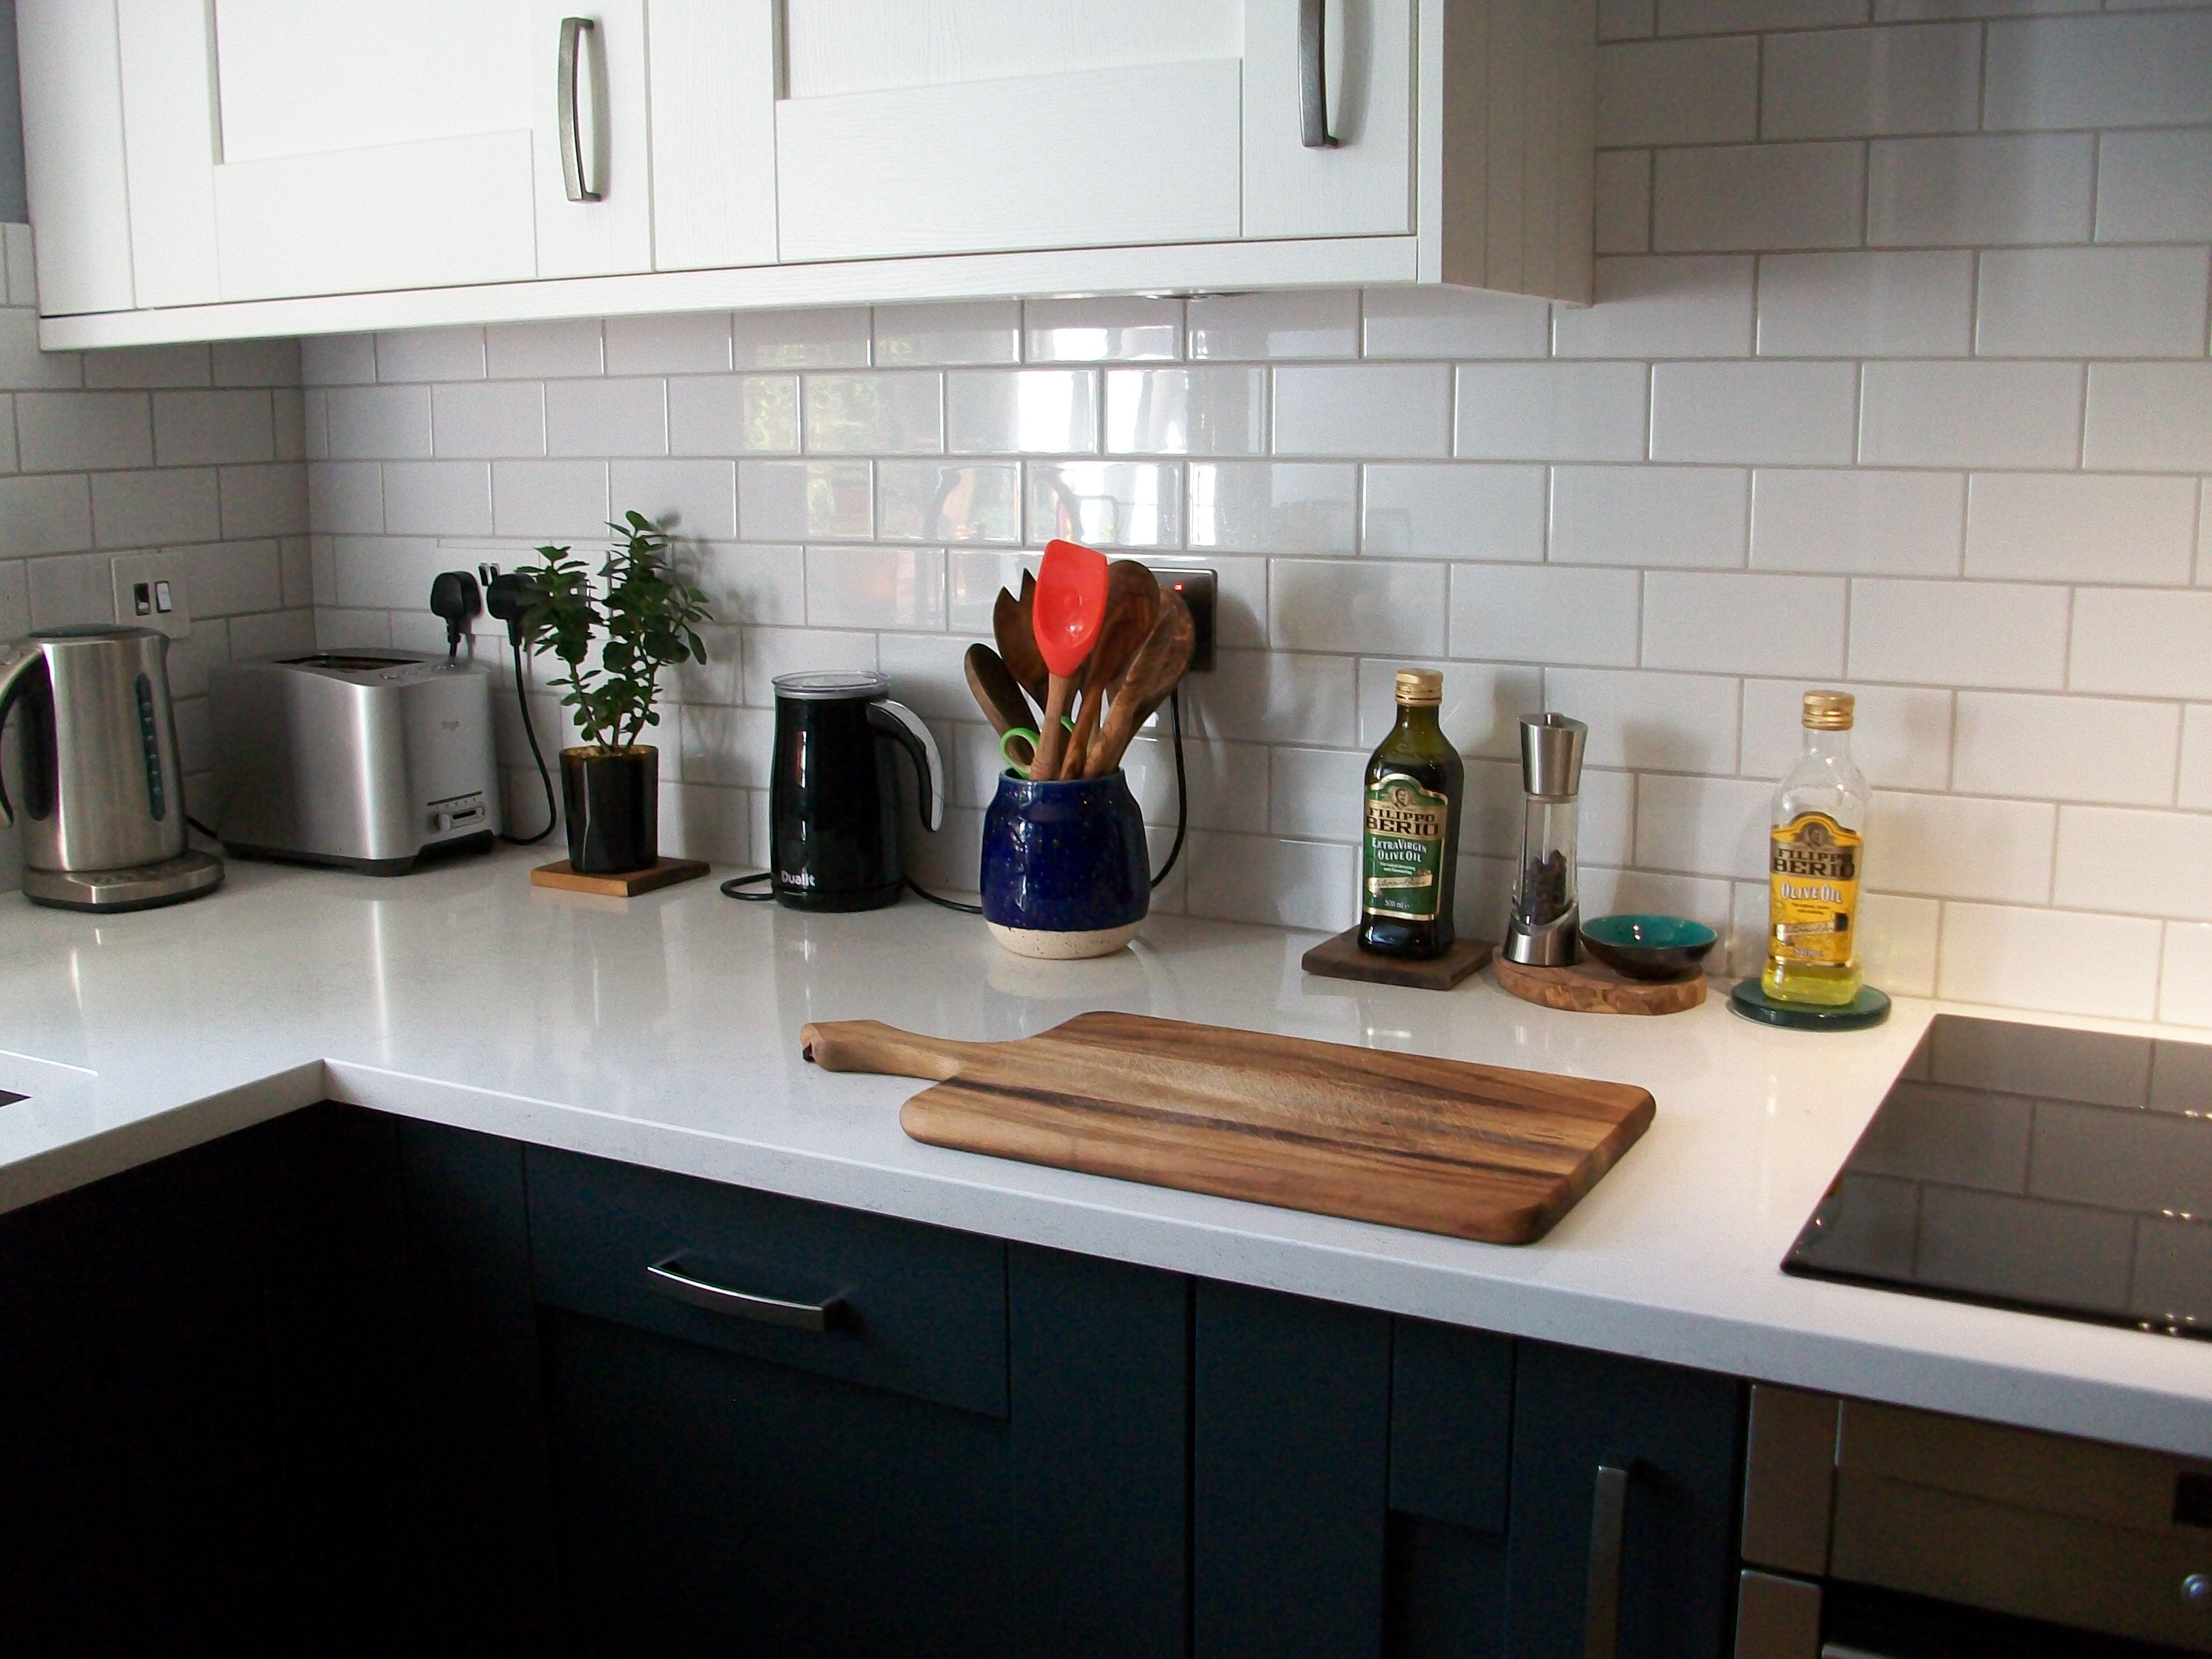 backsplash ideas and grey kitchen quartz rushmore countertops beachy trends light timberlake granite appealing l avaz linen fascinating tiles white